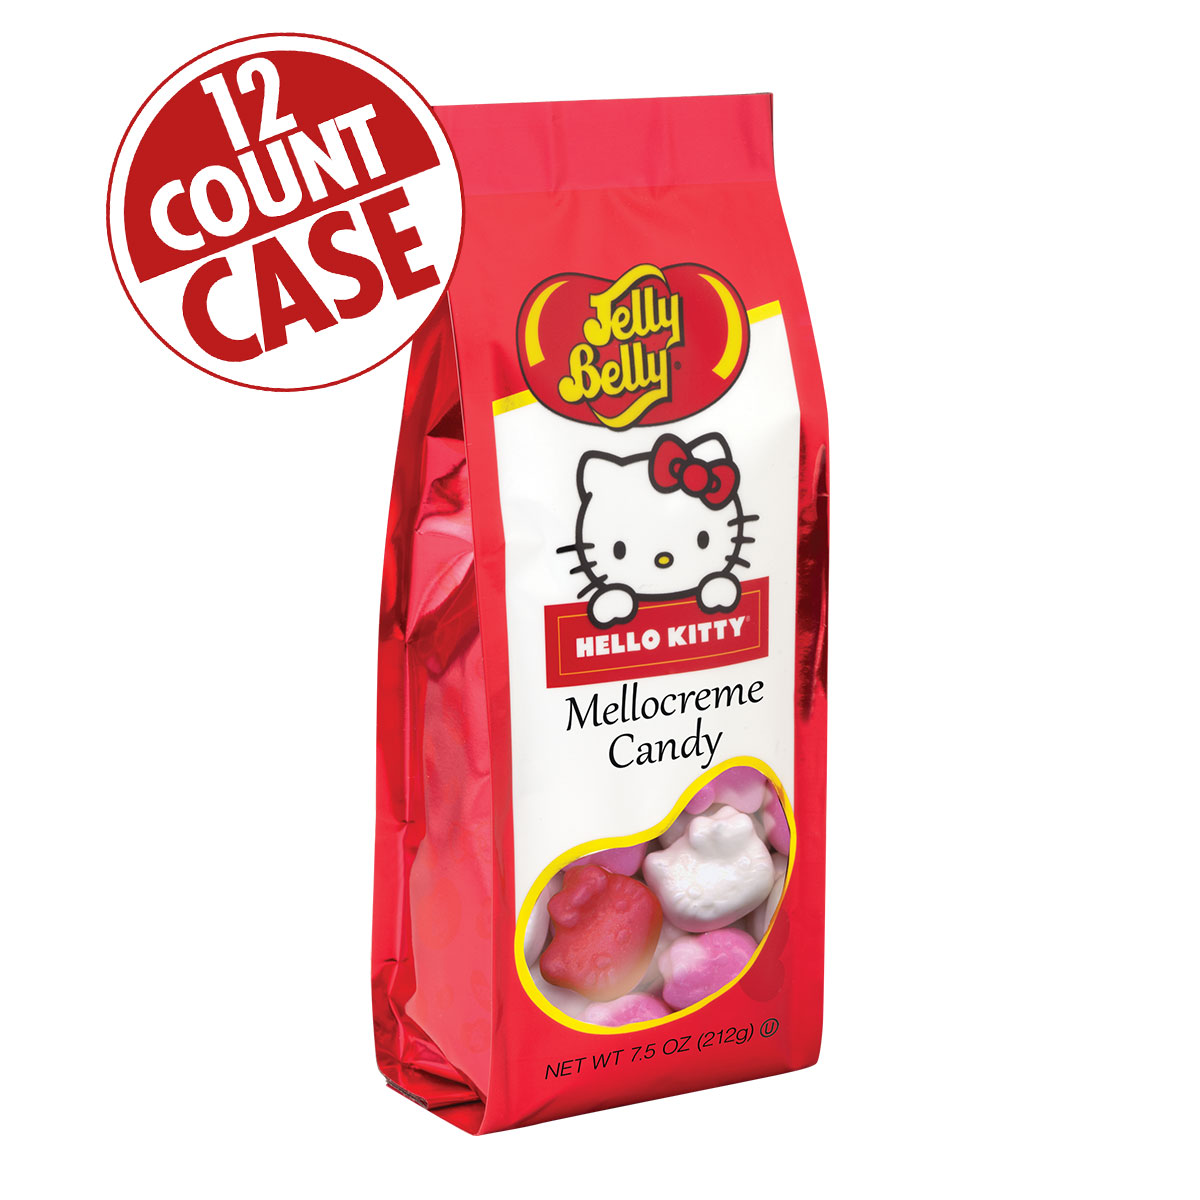 Hello Kitty<sup>&reg;</sup> Mellocreme Candy 7.5 oz Gift Bag - 12 Count Case